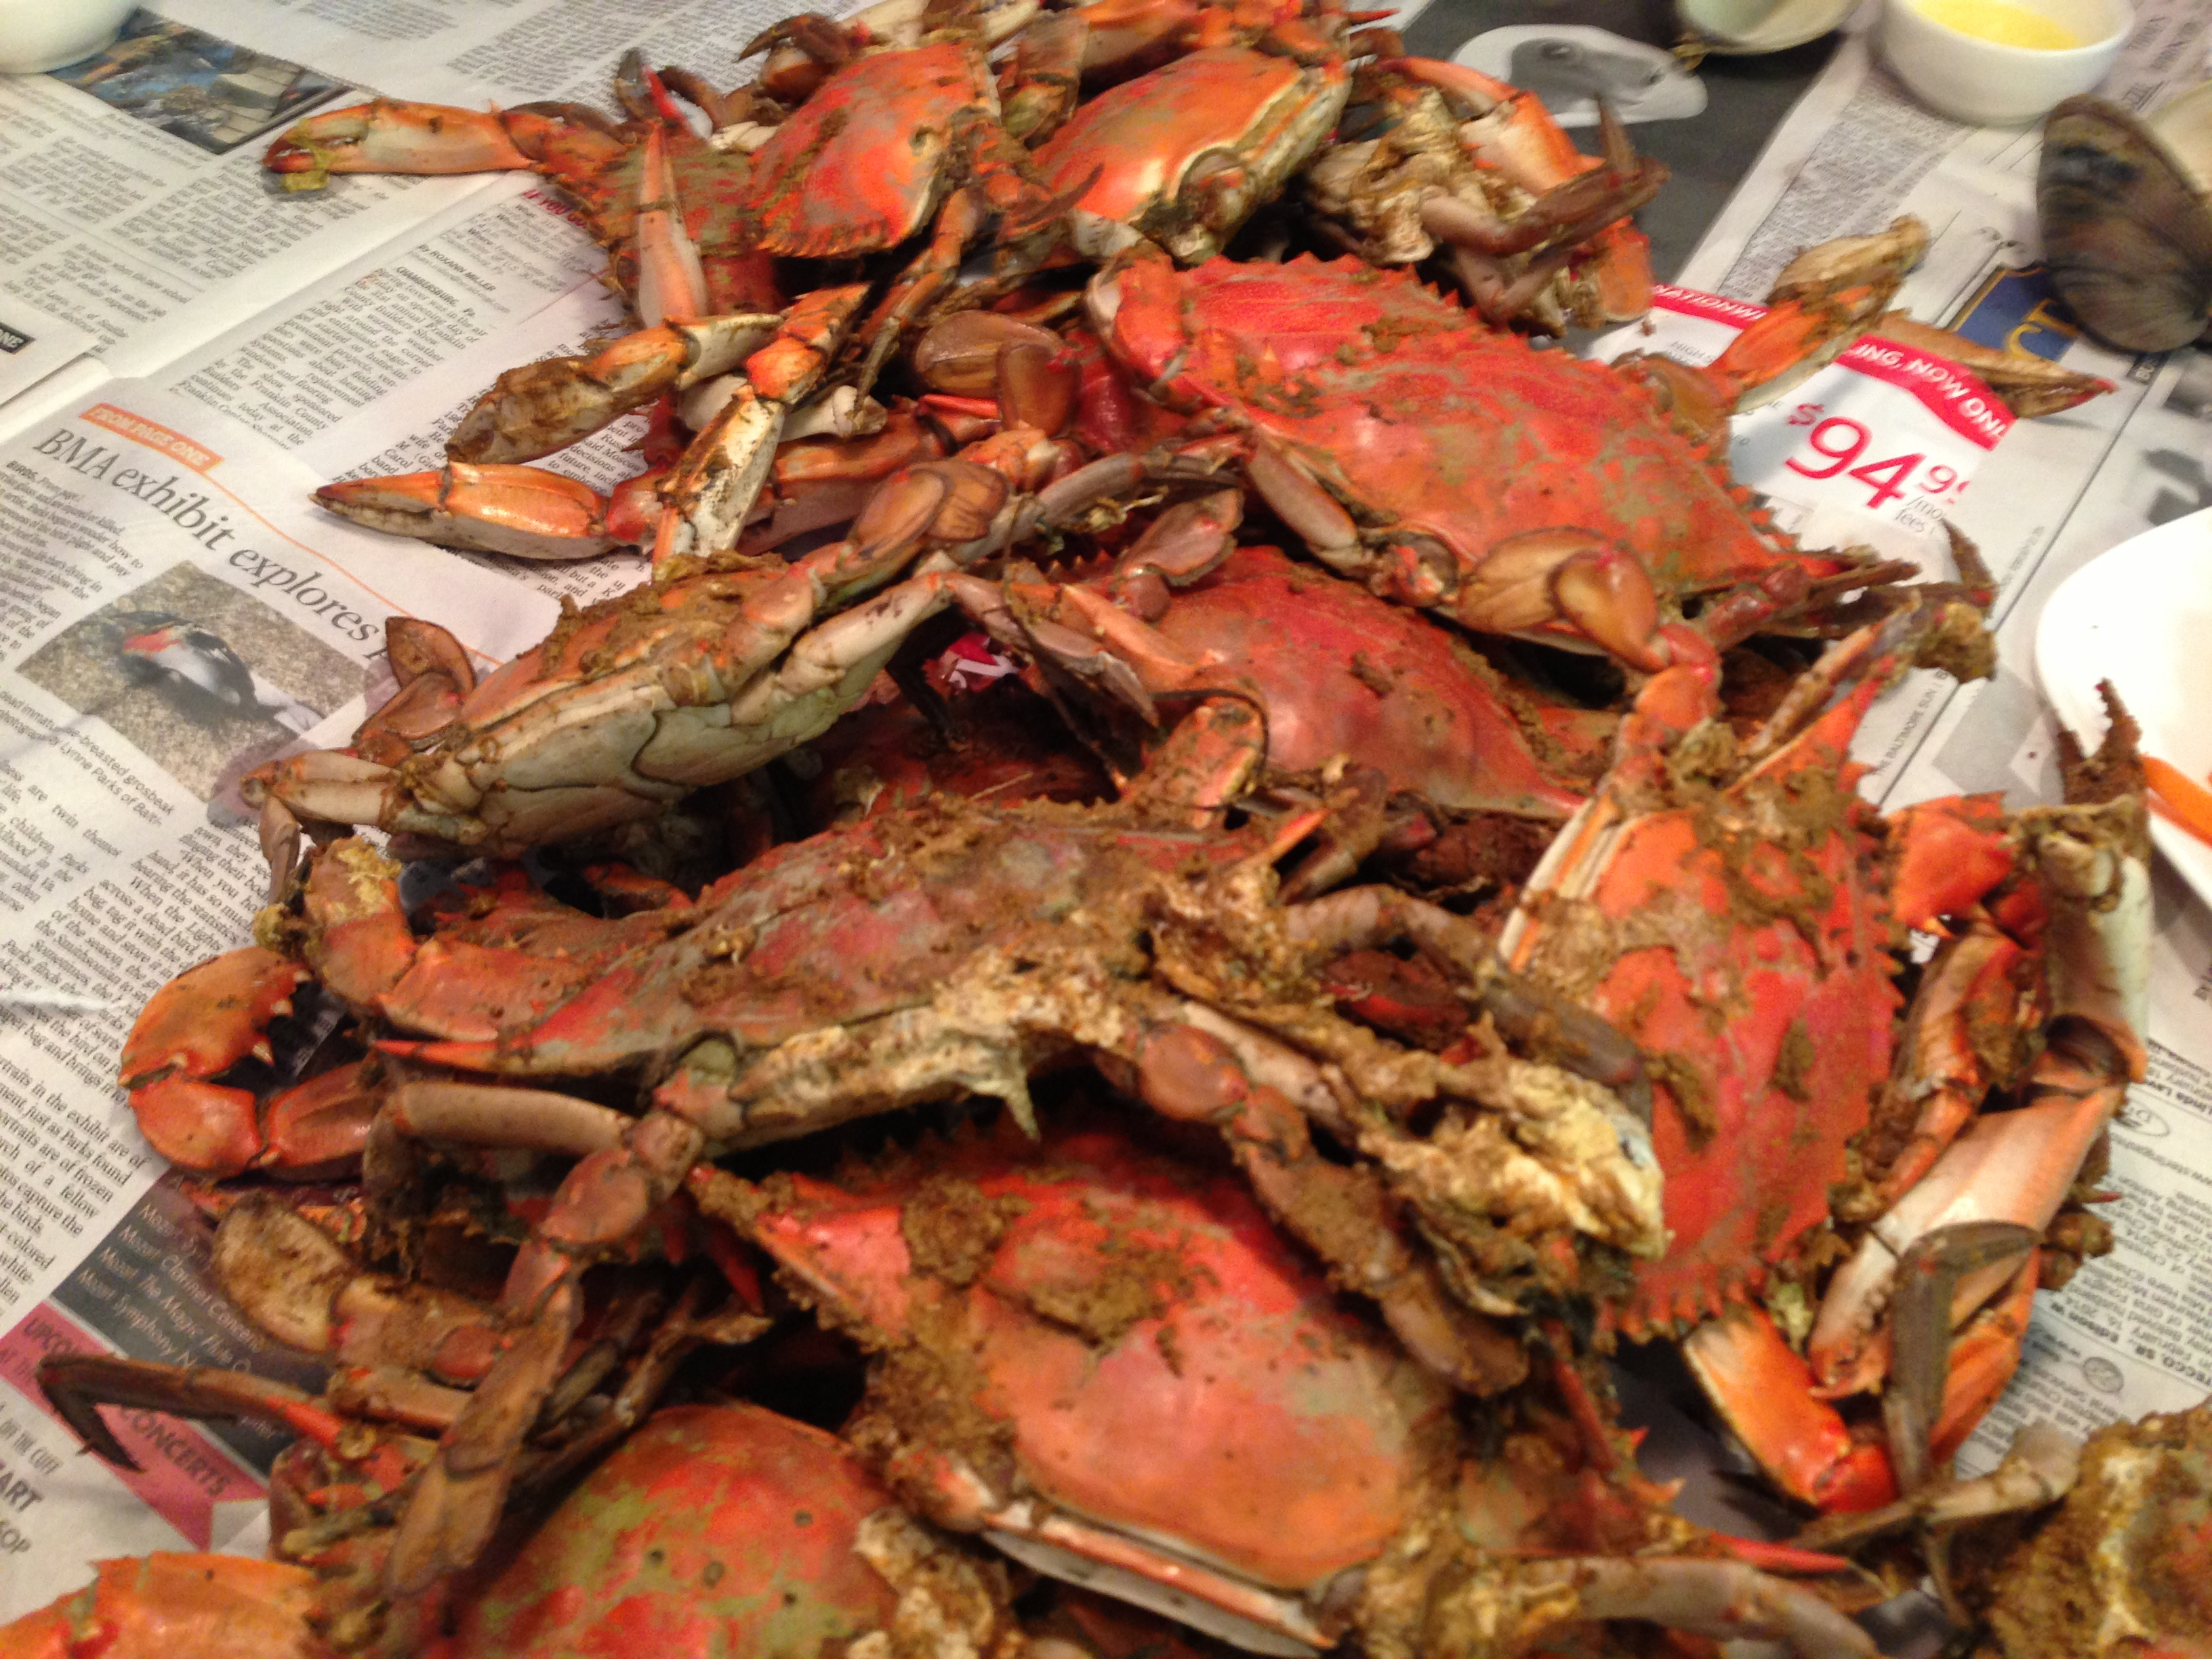 BIG DADDYS RECIPES Steamed Maryland Blue Crabs